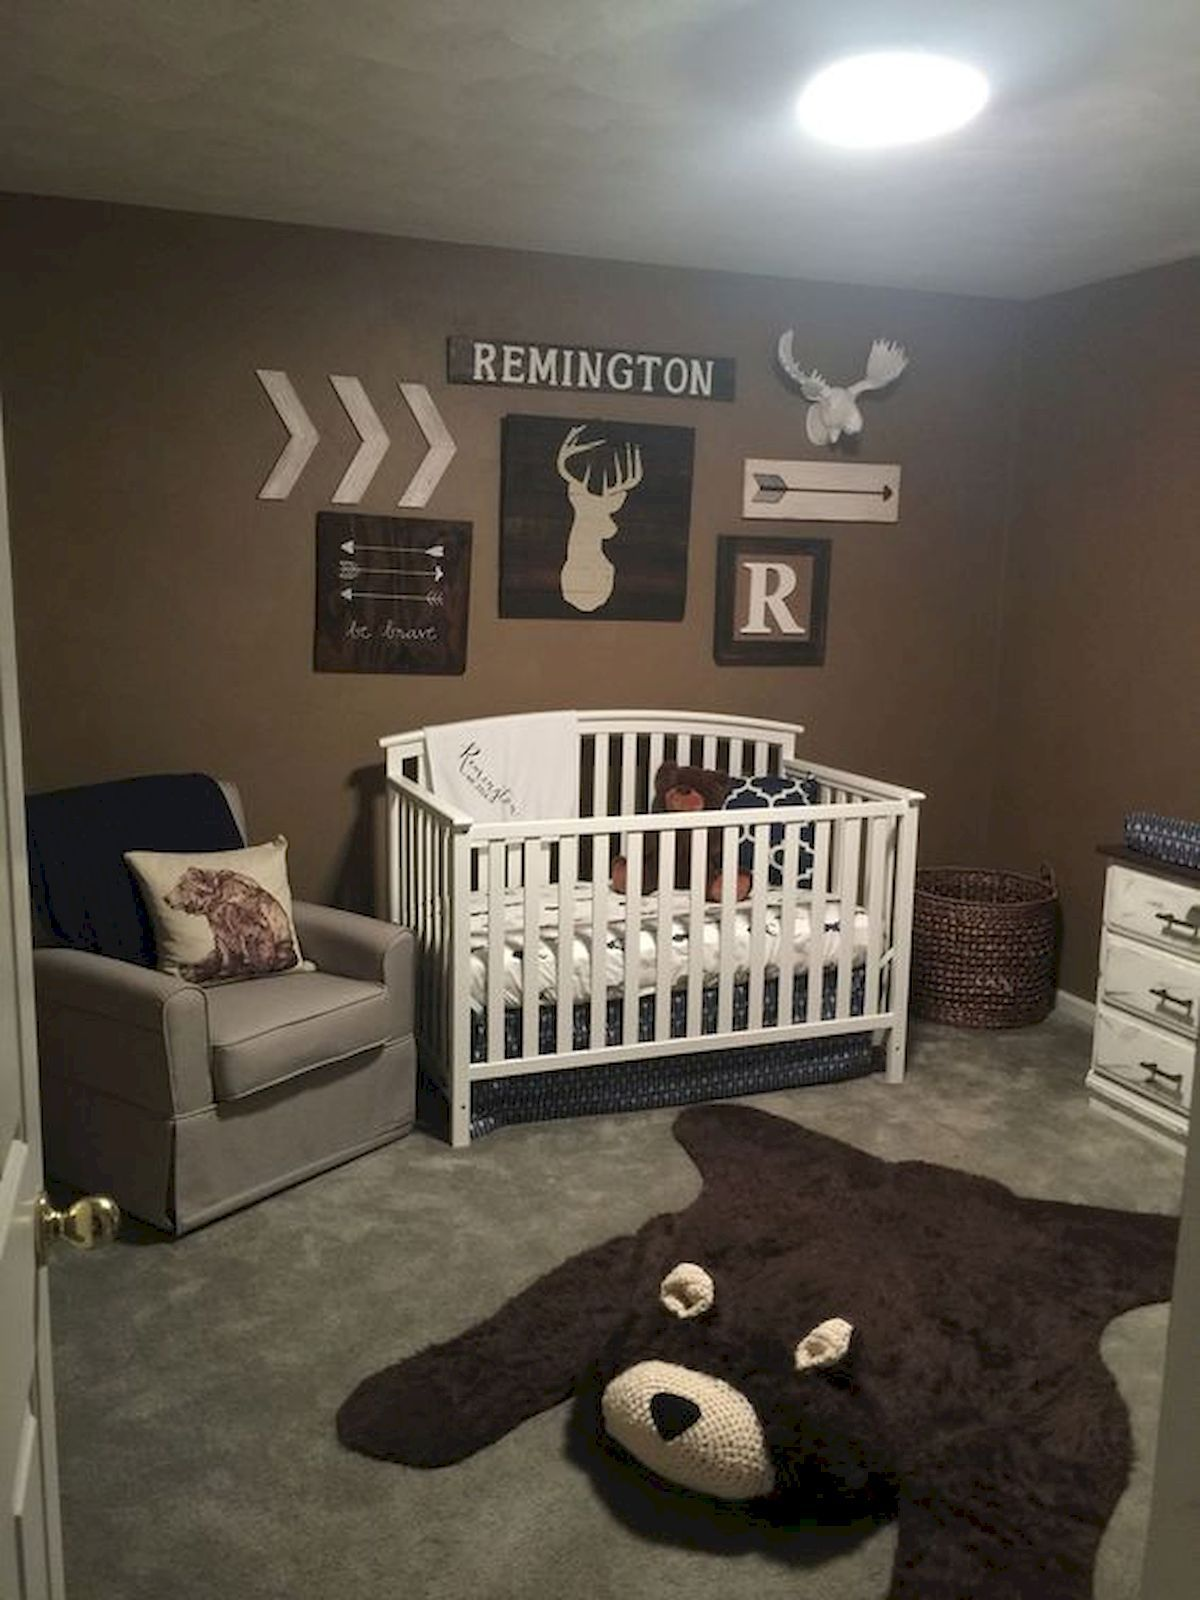 30 Adorable Rustic Nursery Room Ideas images